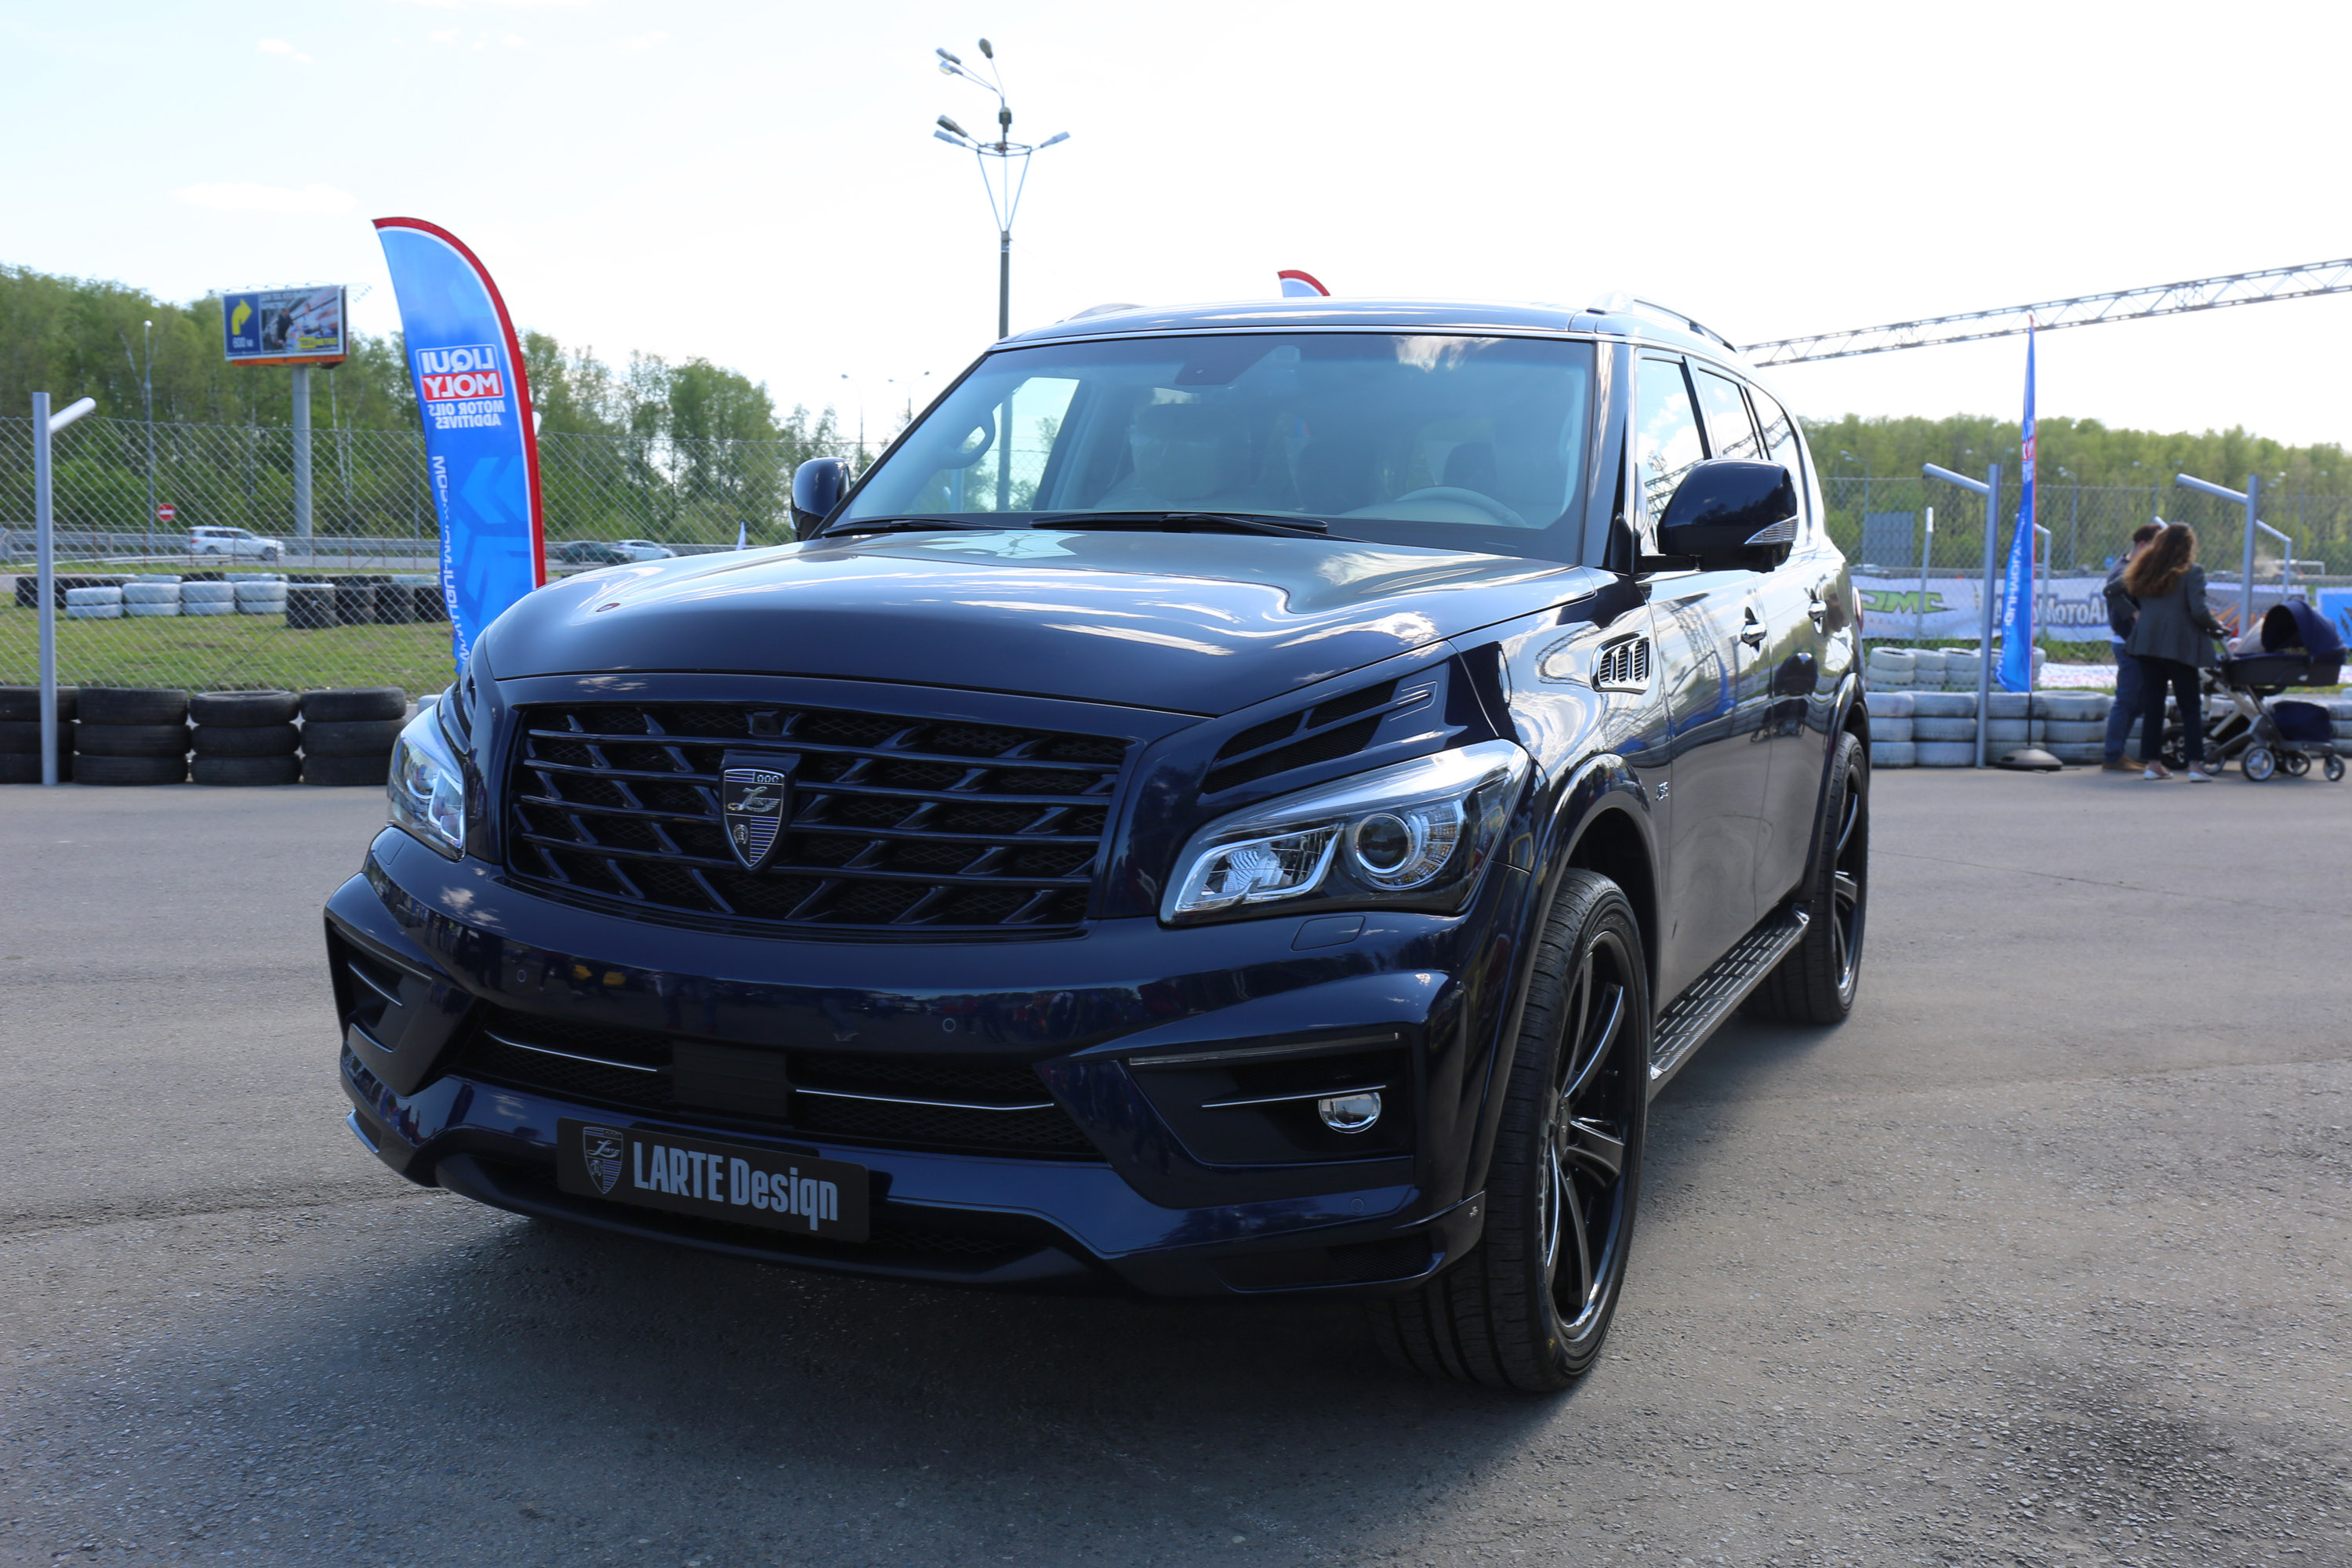 infiniti qx56 reviews research new used models motor autos post. Black Bedroom Furniture Sets. Home Design Ideas